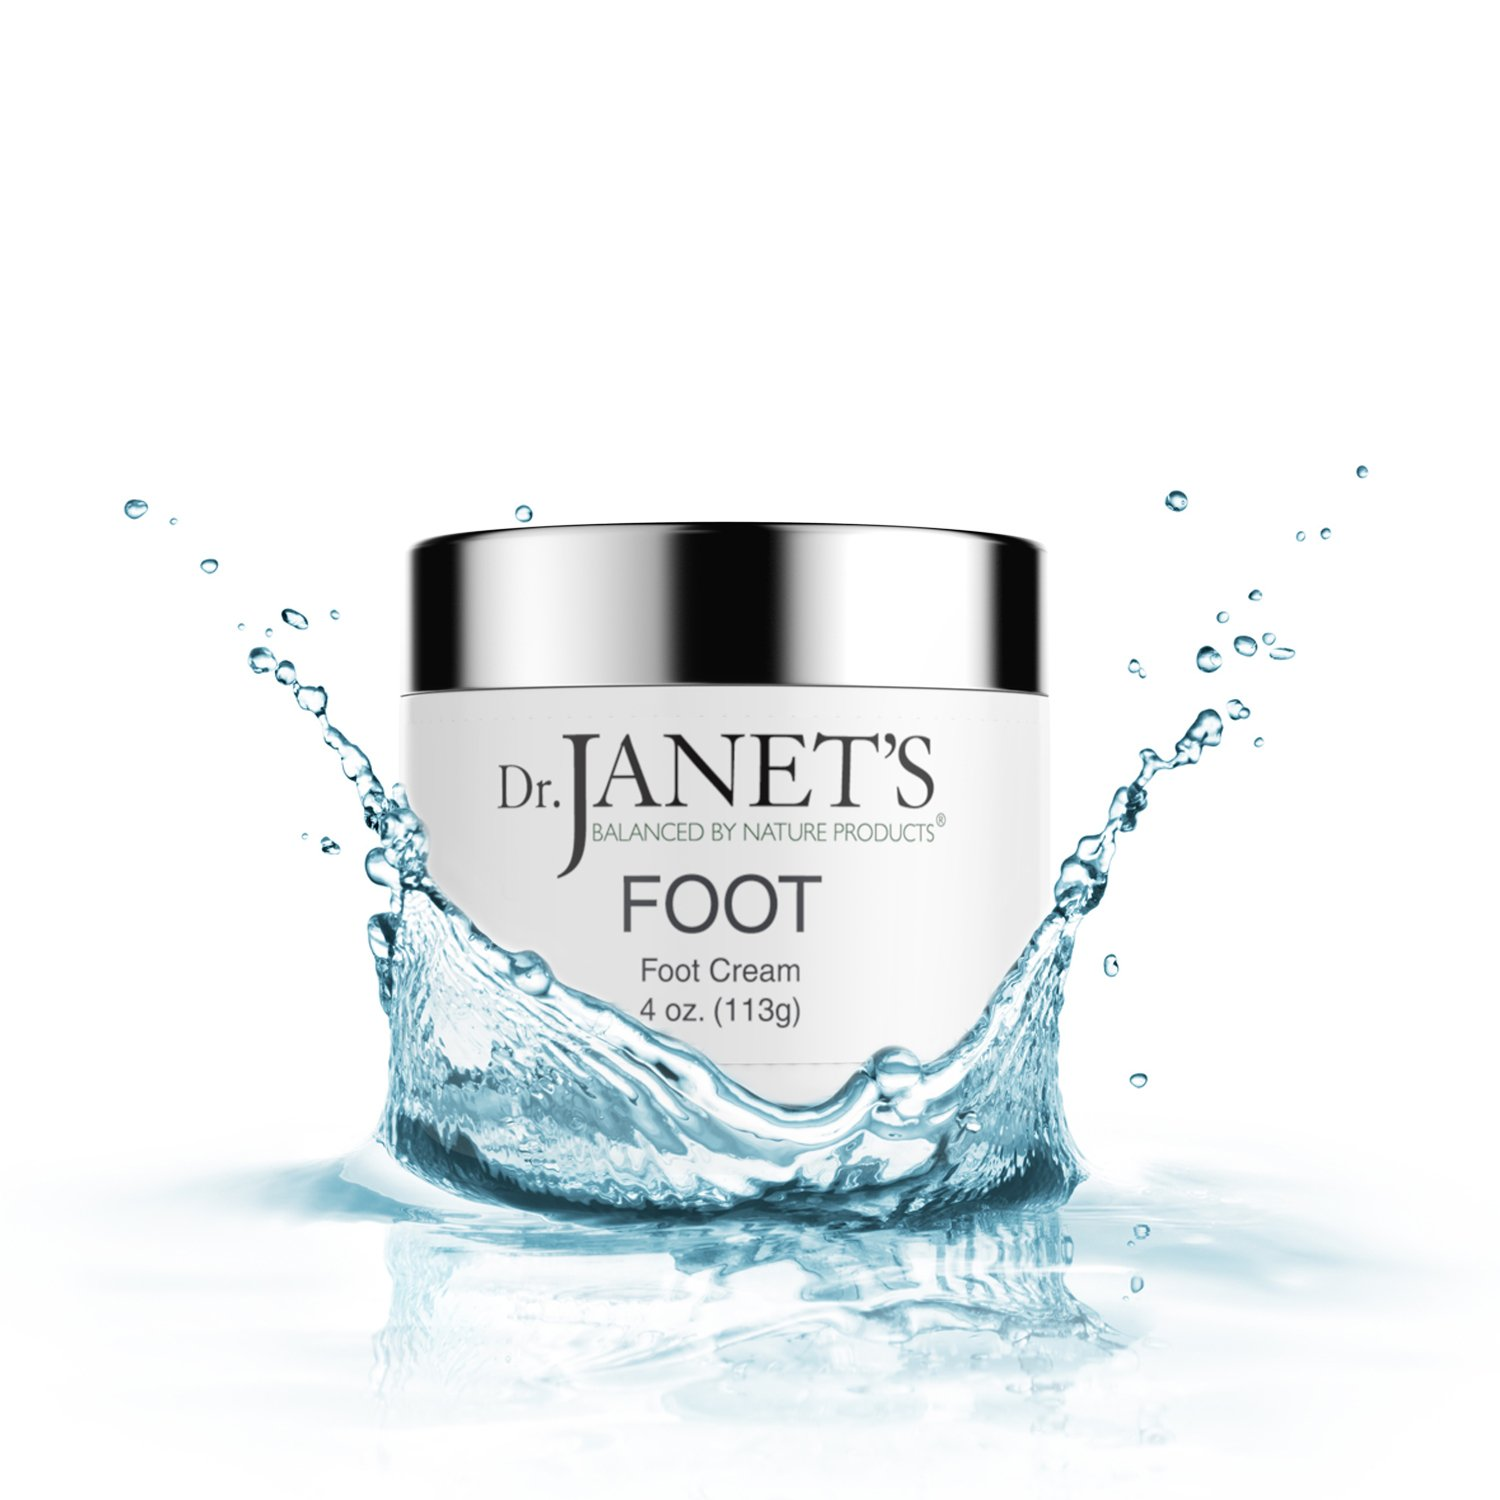 f4dc1b148d9 Dr. Janet's Balanced By Nature Products Foot Cream - With Organic Shea  Butter and Peppermint